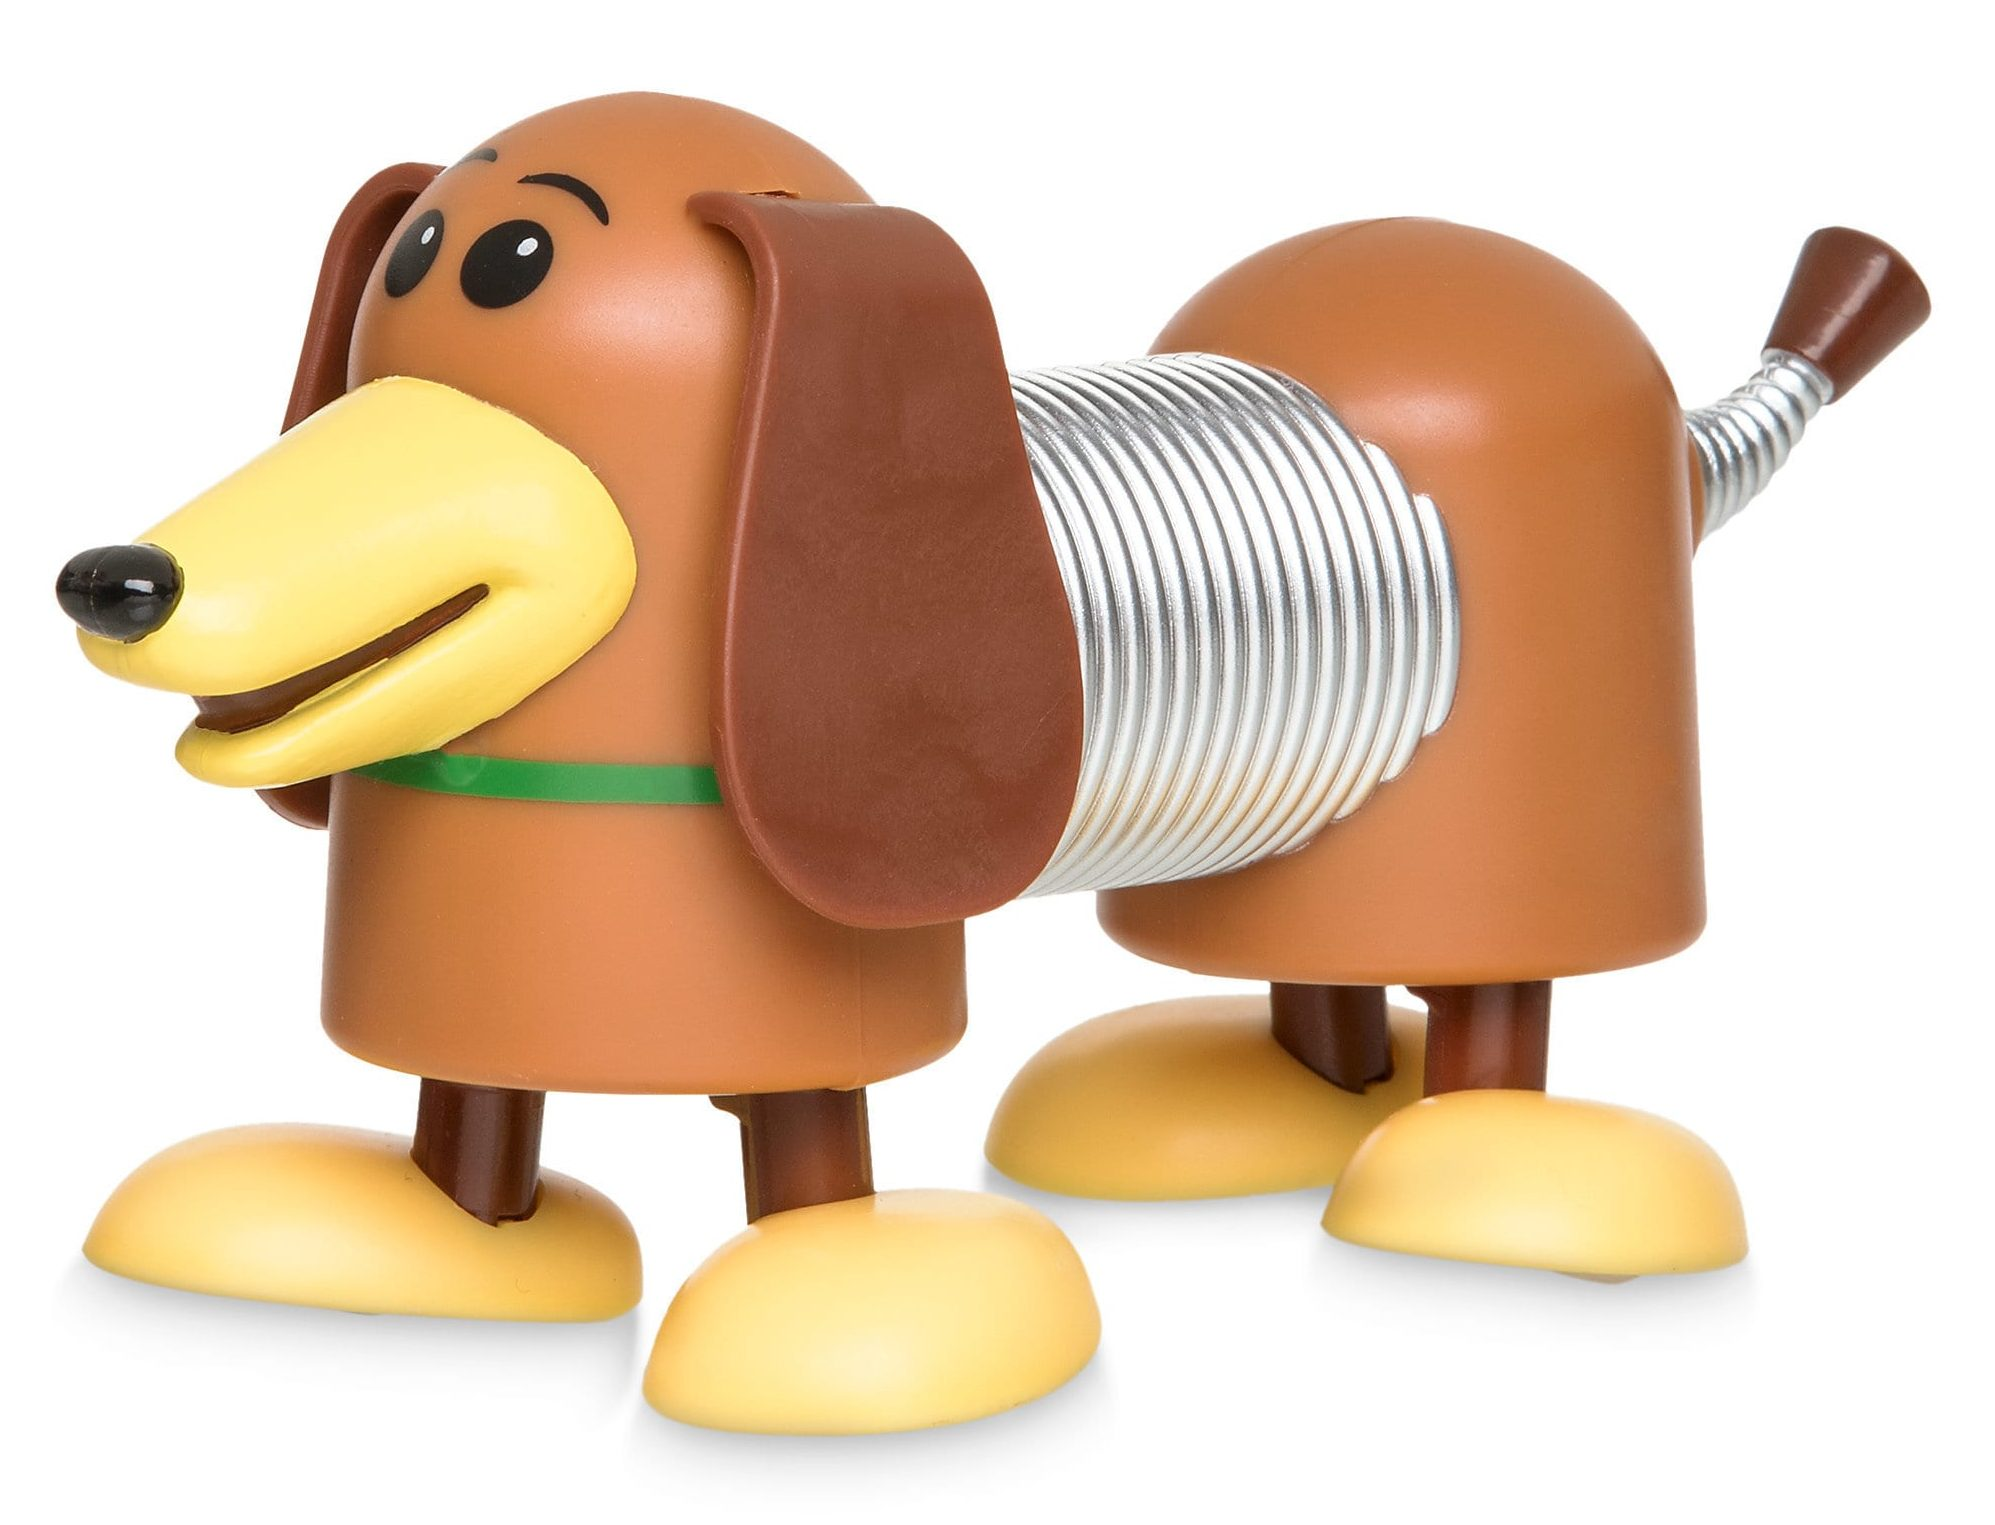 slinky dog shufflerz walking figure - toy story 4